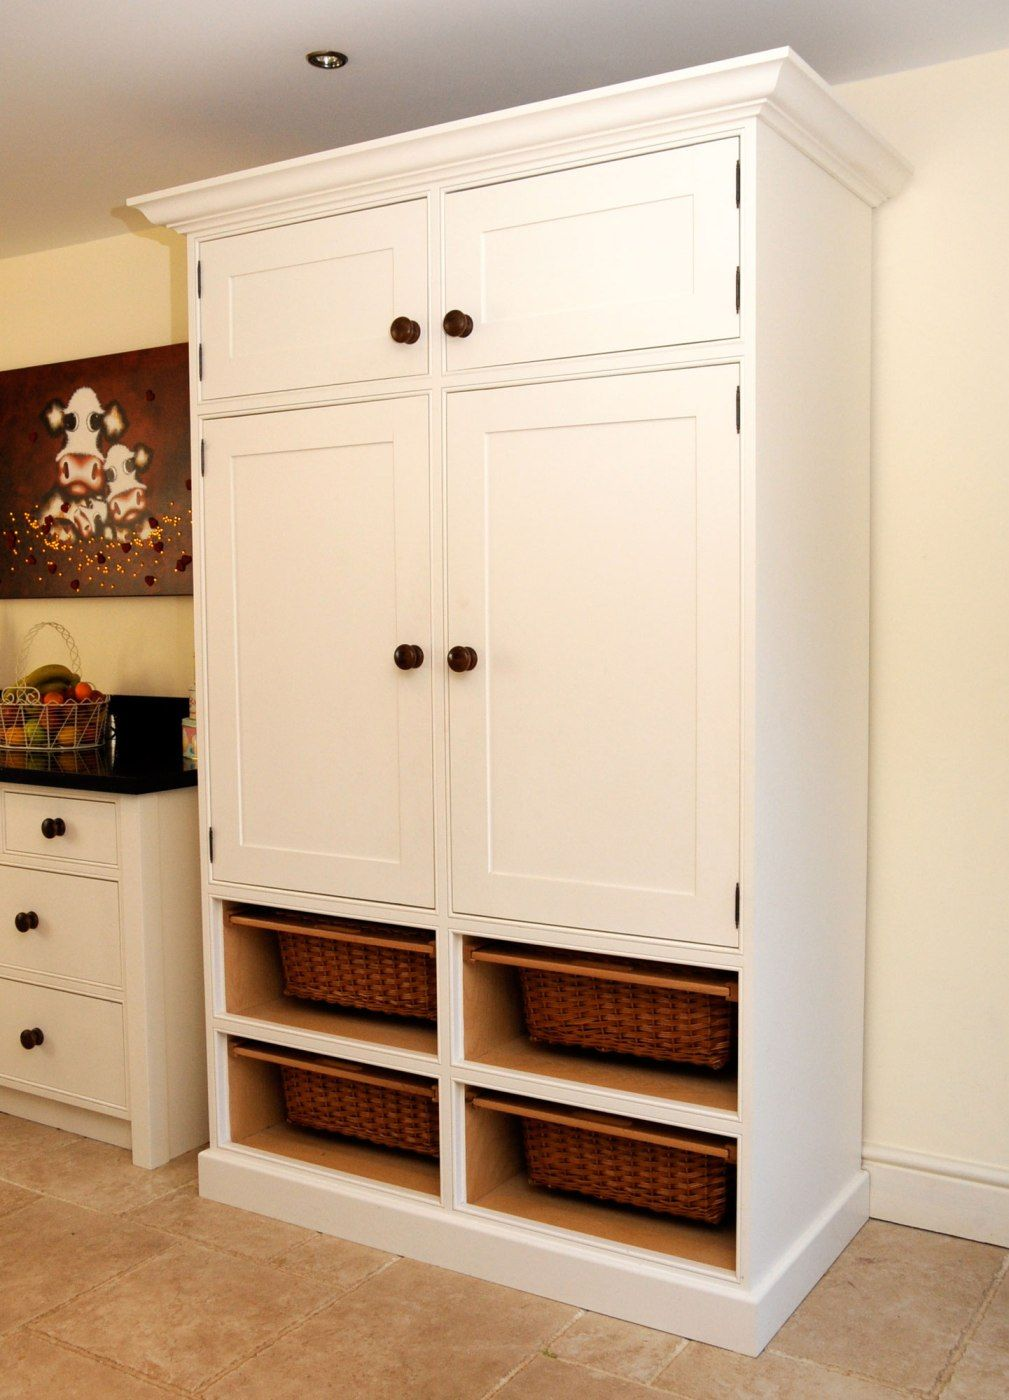 Lowes Free Standing Kitchen Cabinets | Kitchens | Pinterest ...